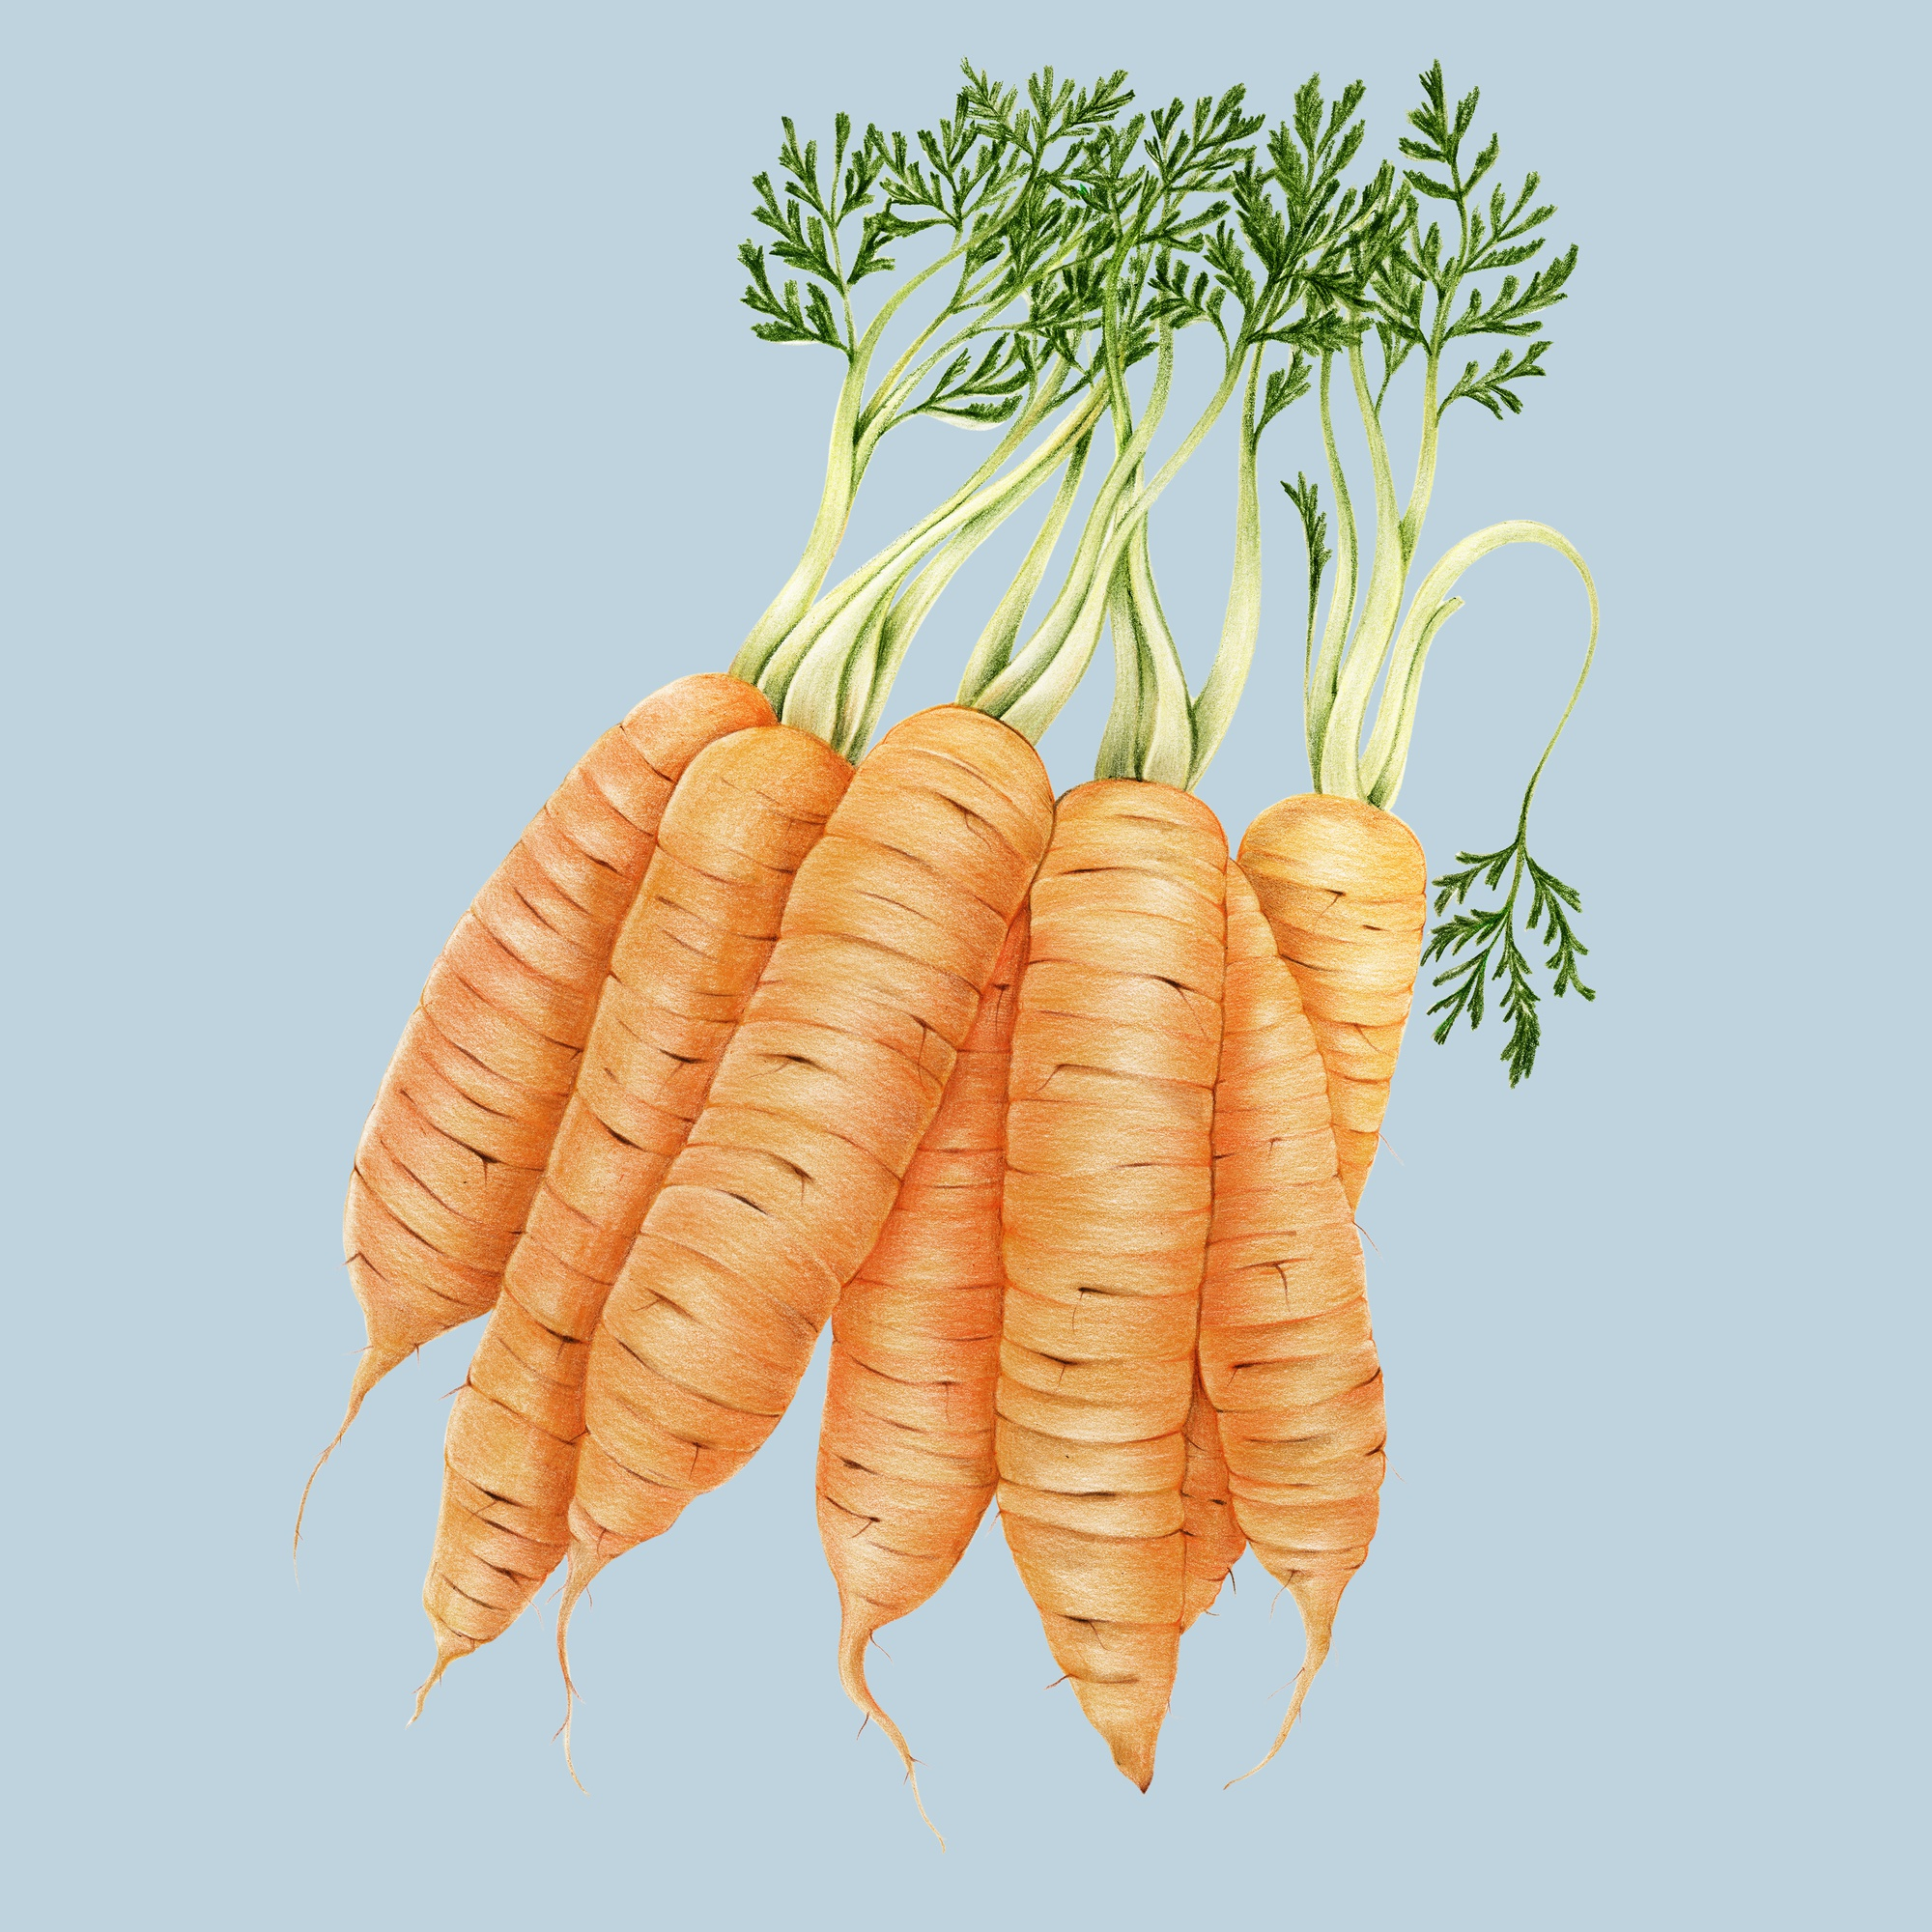 Hand drawn watercolor of carrots